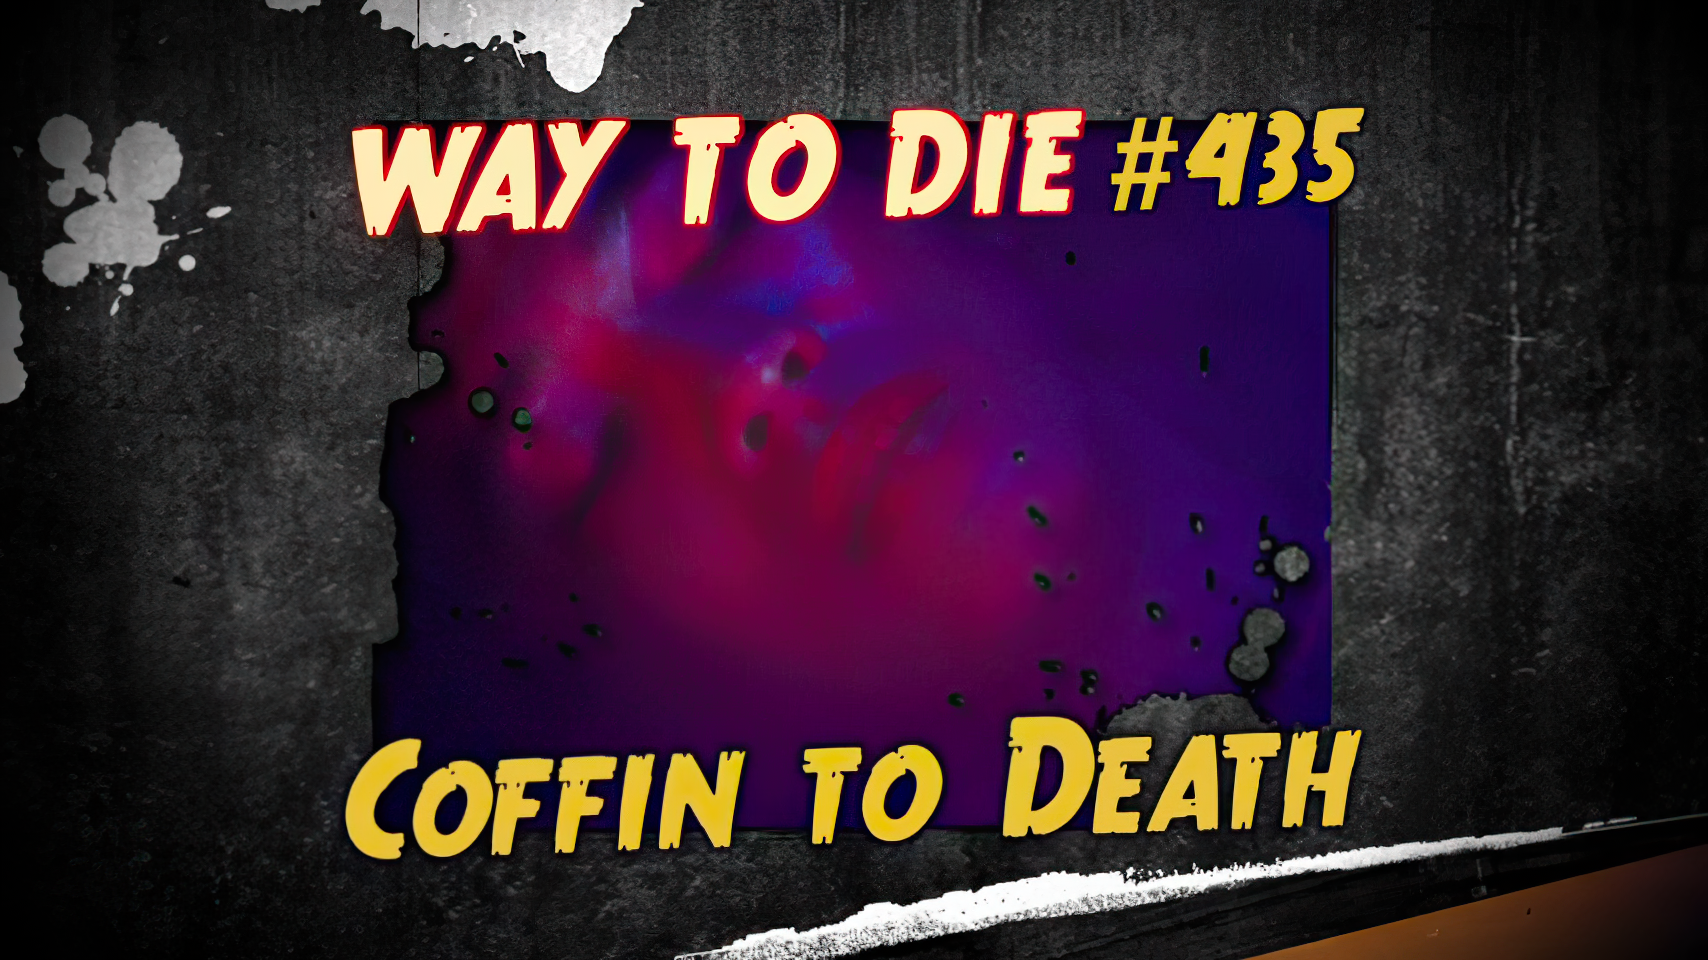 Coffin to Death